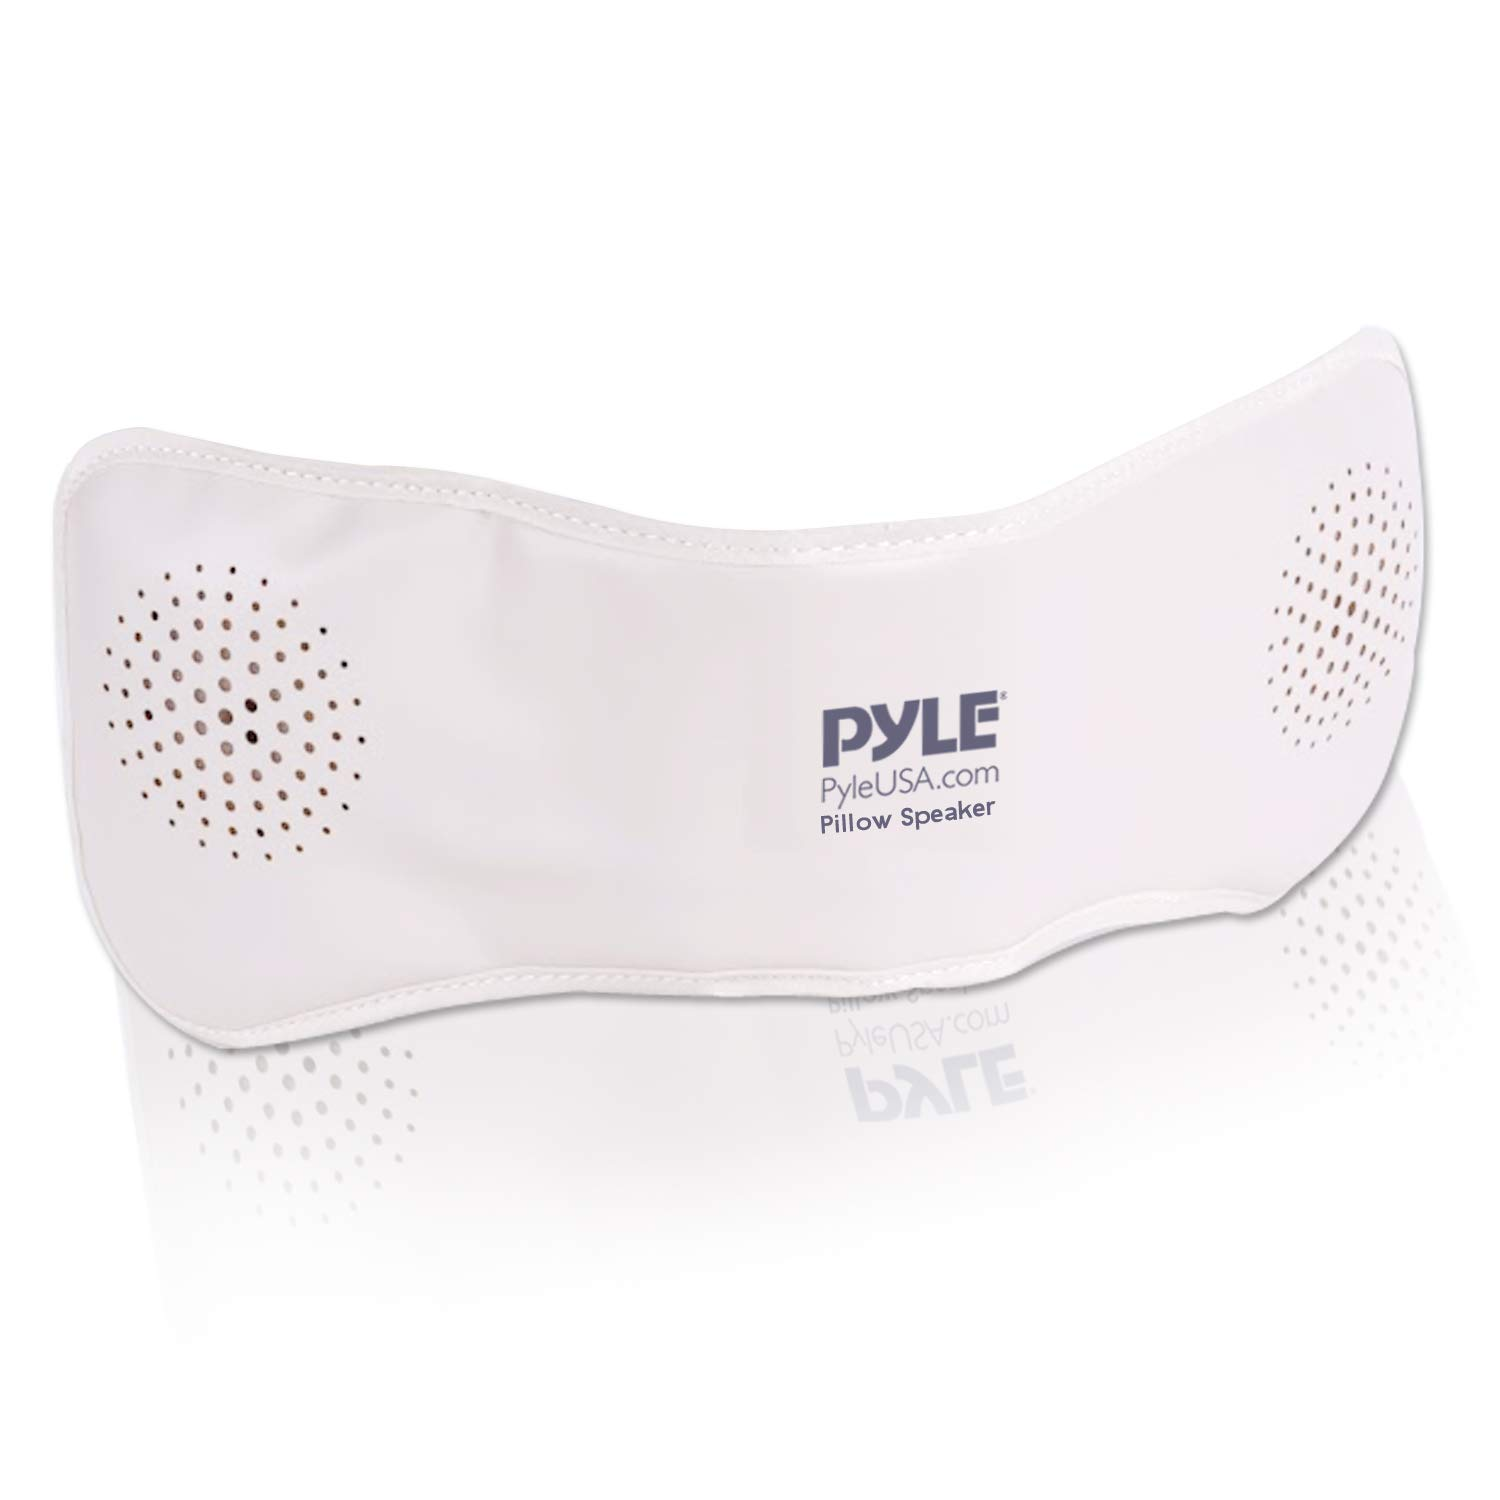 Pyle PPSP10 Bluetooth Pillow Speaker, Rechargeable Portable Sleep Therapy  Noise Sound Machine with Soothing All-Natural Sounds Remote Control  AUX